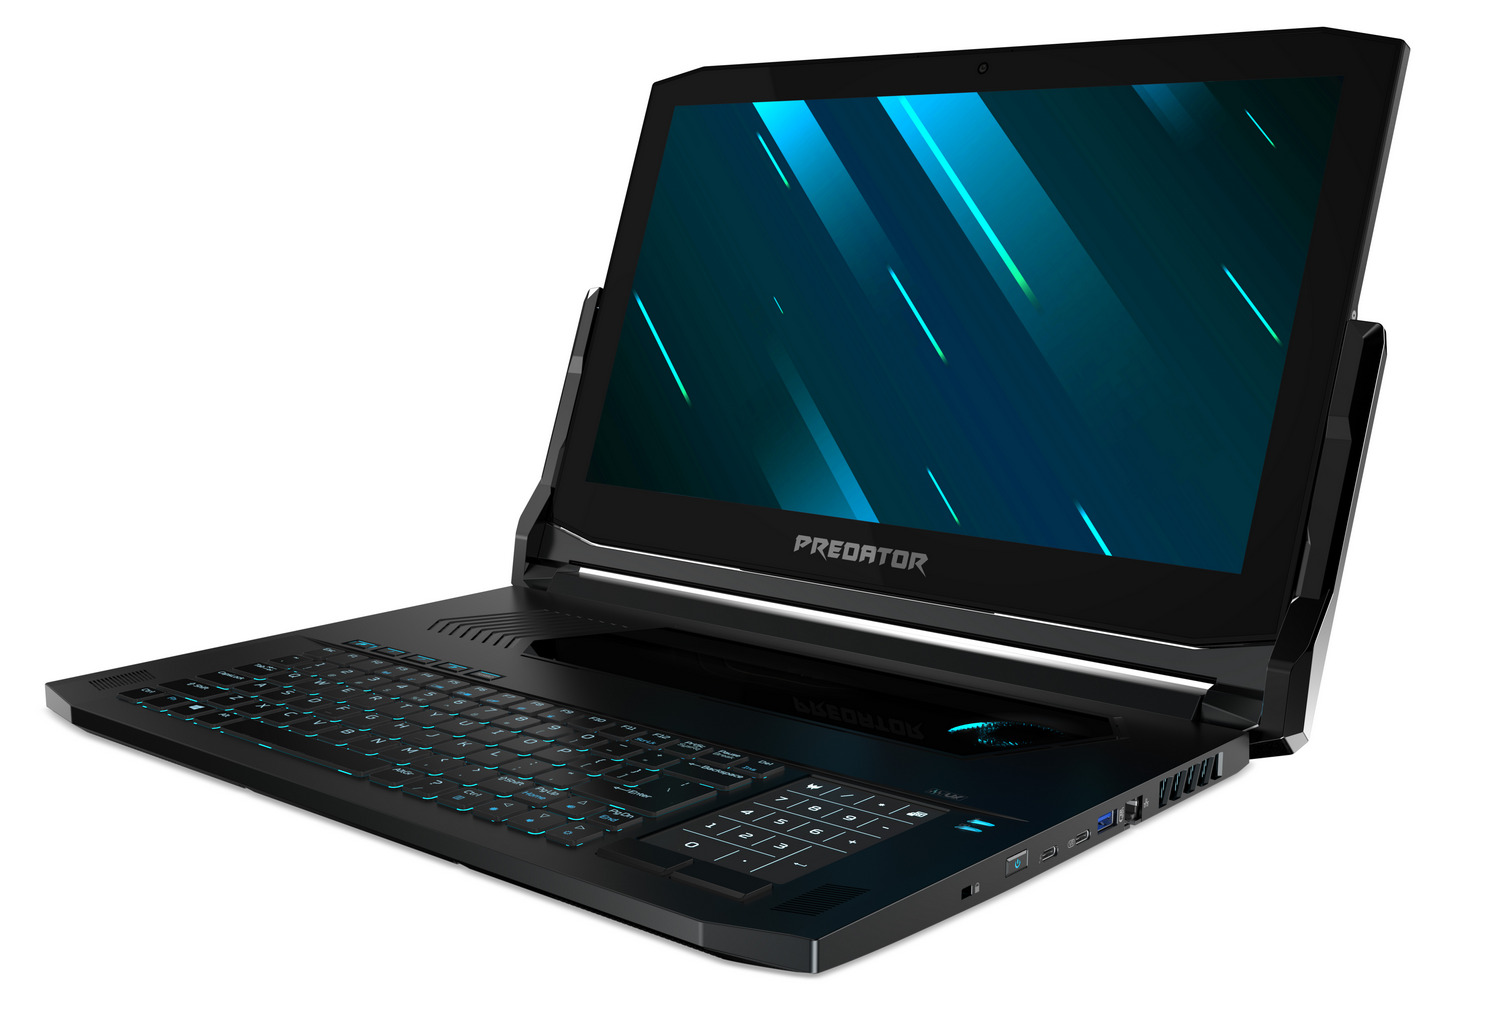 Acer Predator Triton 900 $4000 gaming laptop